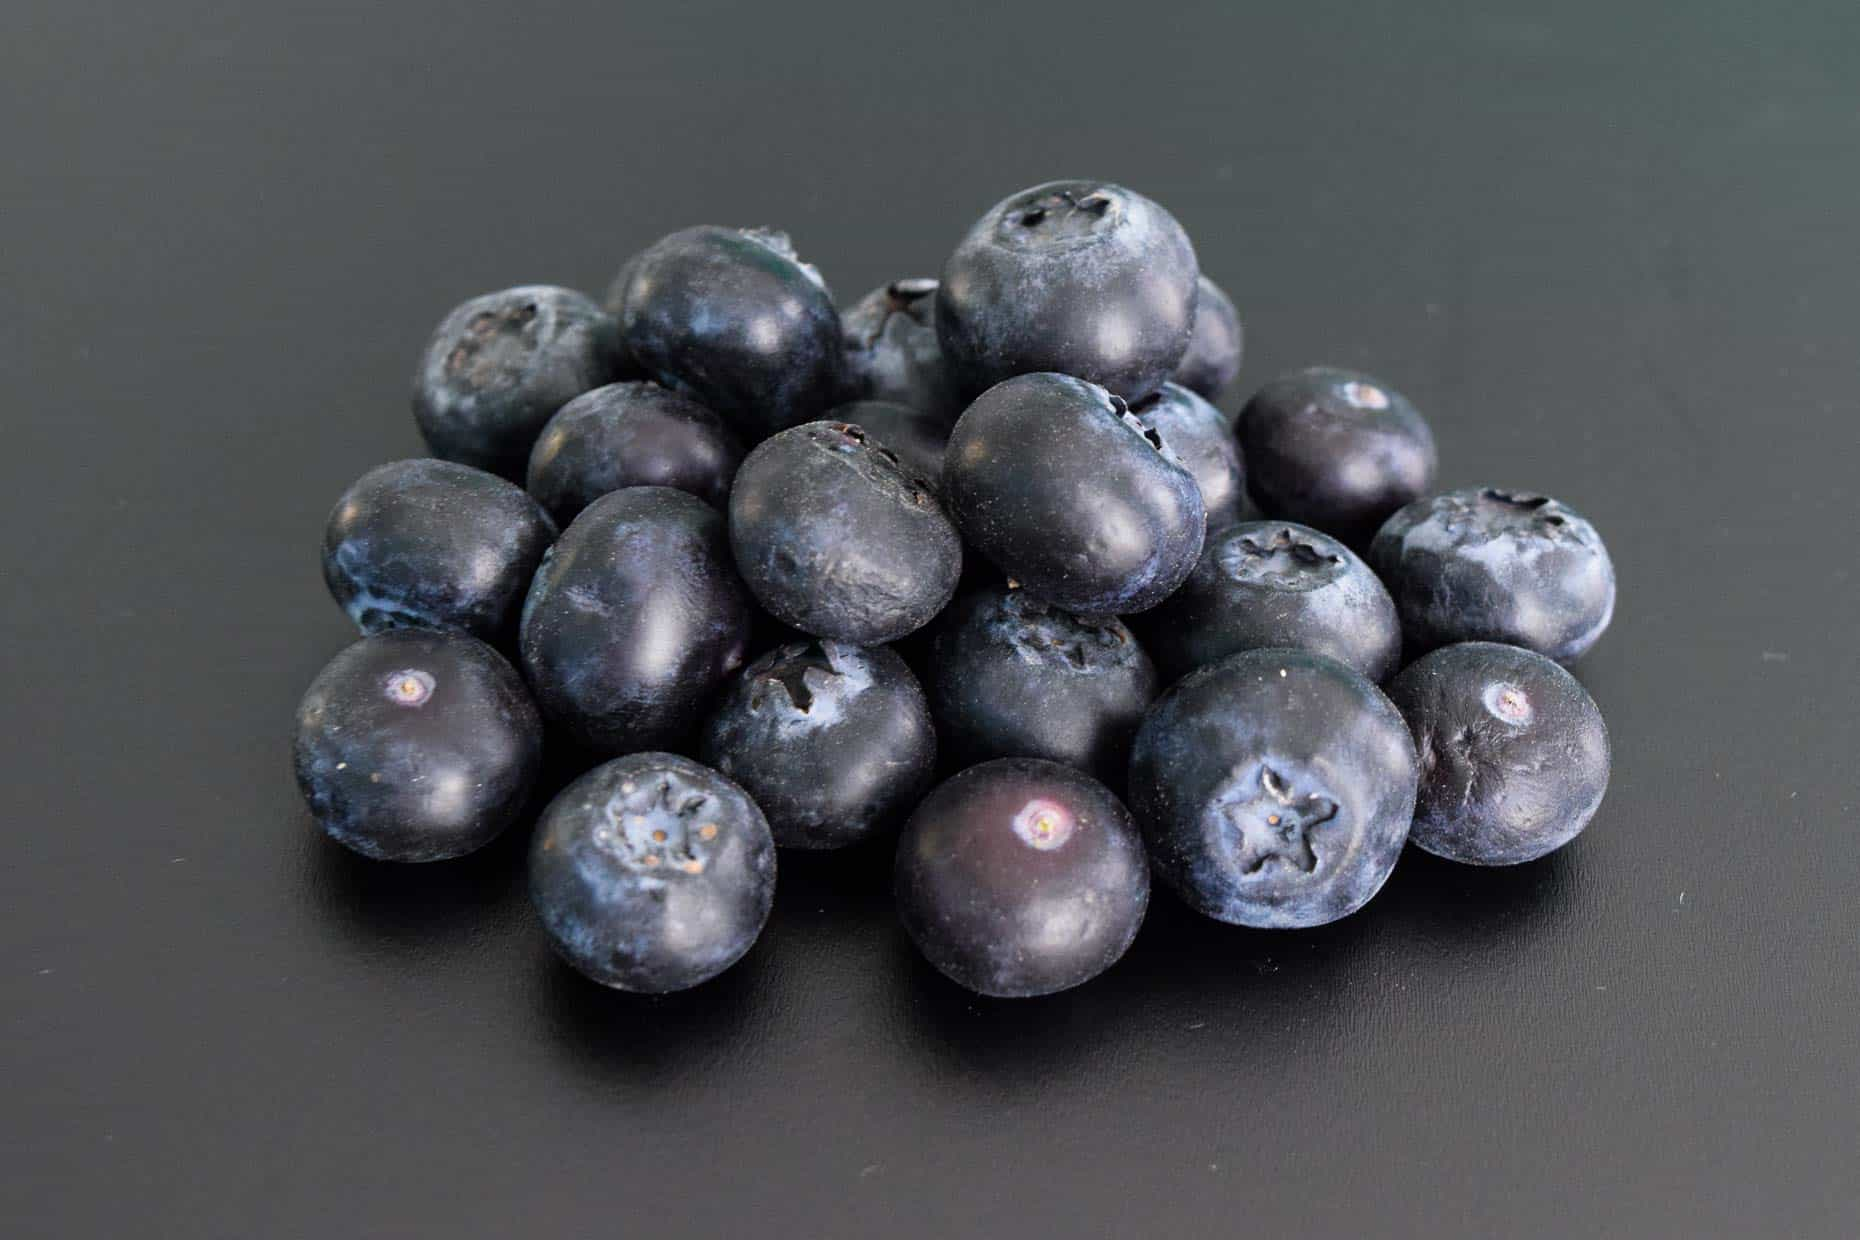 Blueberries on black background